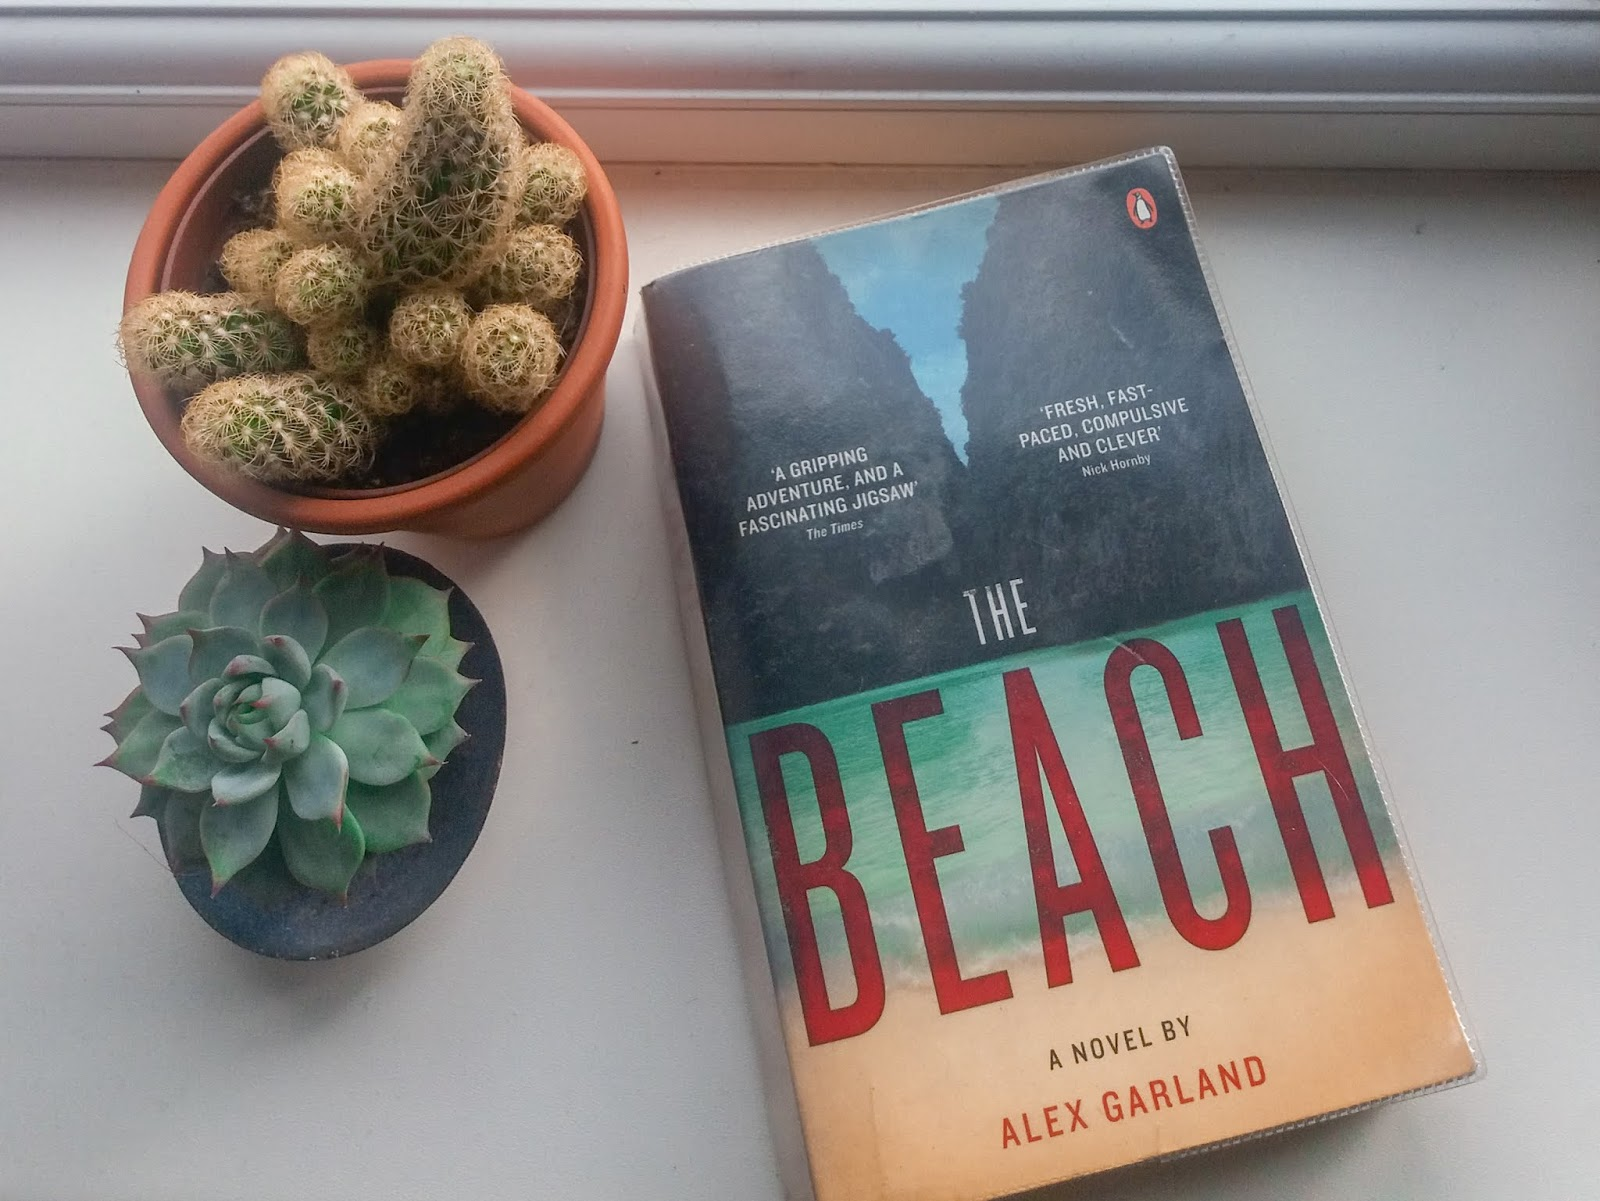 the beach alex garland book report An original book review of the beach by alex garland miss burma by charmaine craig an historical family saga in the classic sense, charmaine craig's miss burma puts a twist on things by setting the book in the tumultuous burma of the 20th century, from the time of british colonialism, through to independence and ne win's seizure of power.